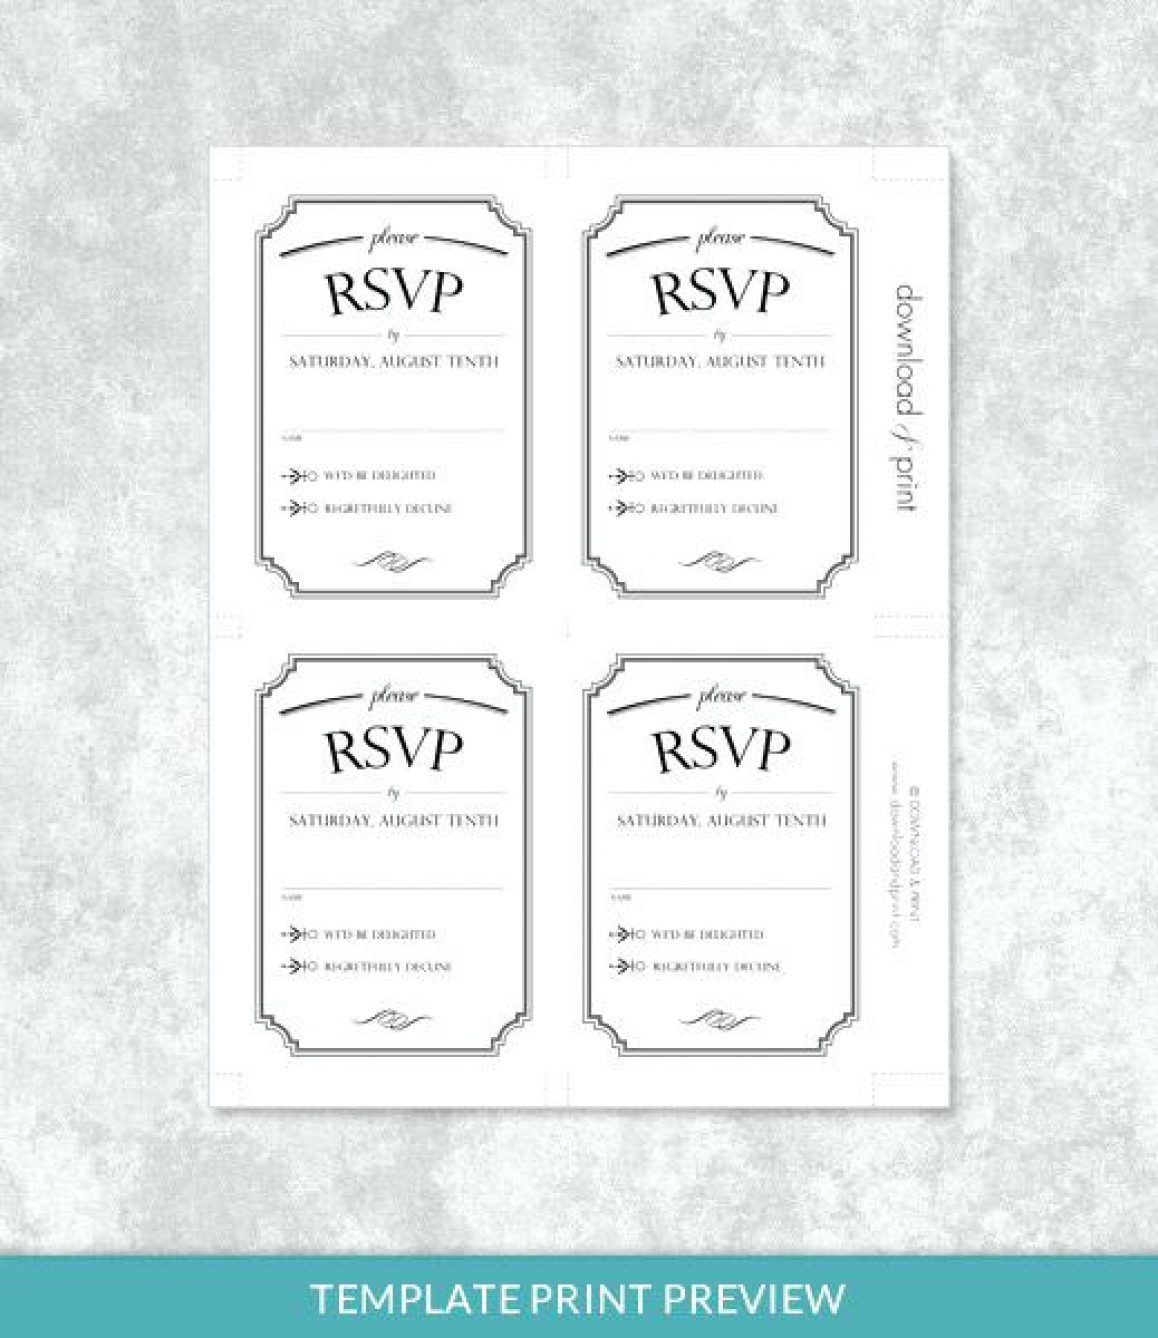 001 Stupendou Microsoft Word Invitation Template 4 Per Page High Def Full